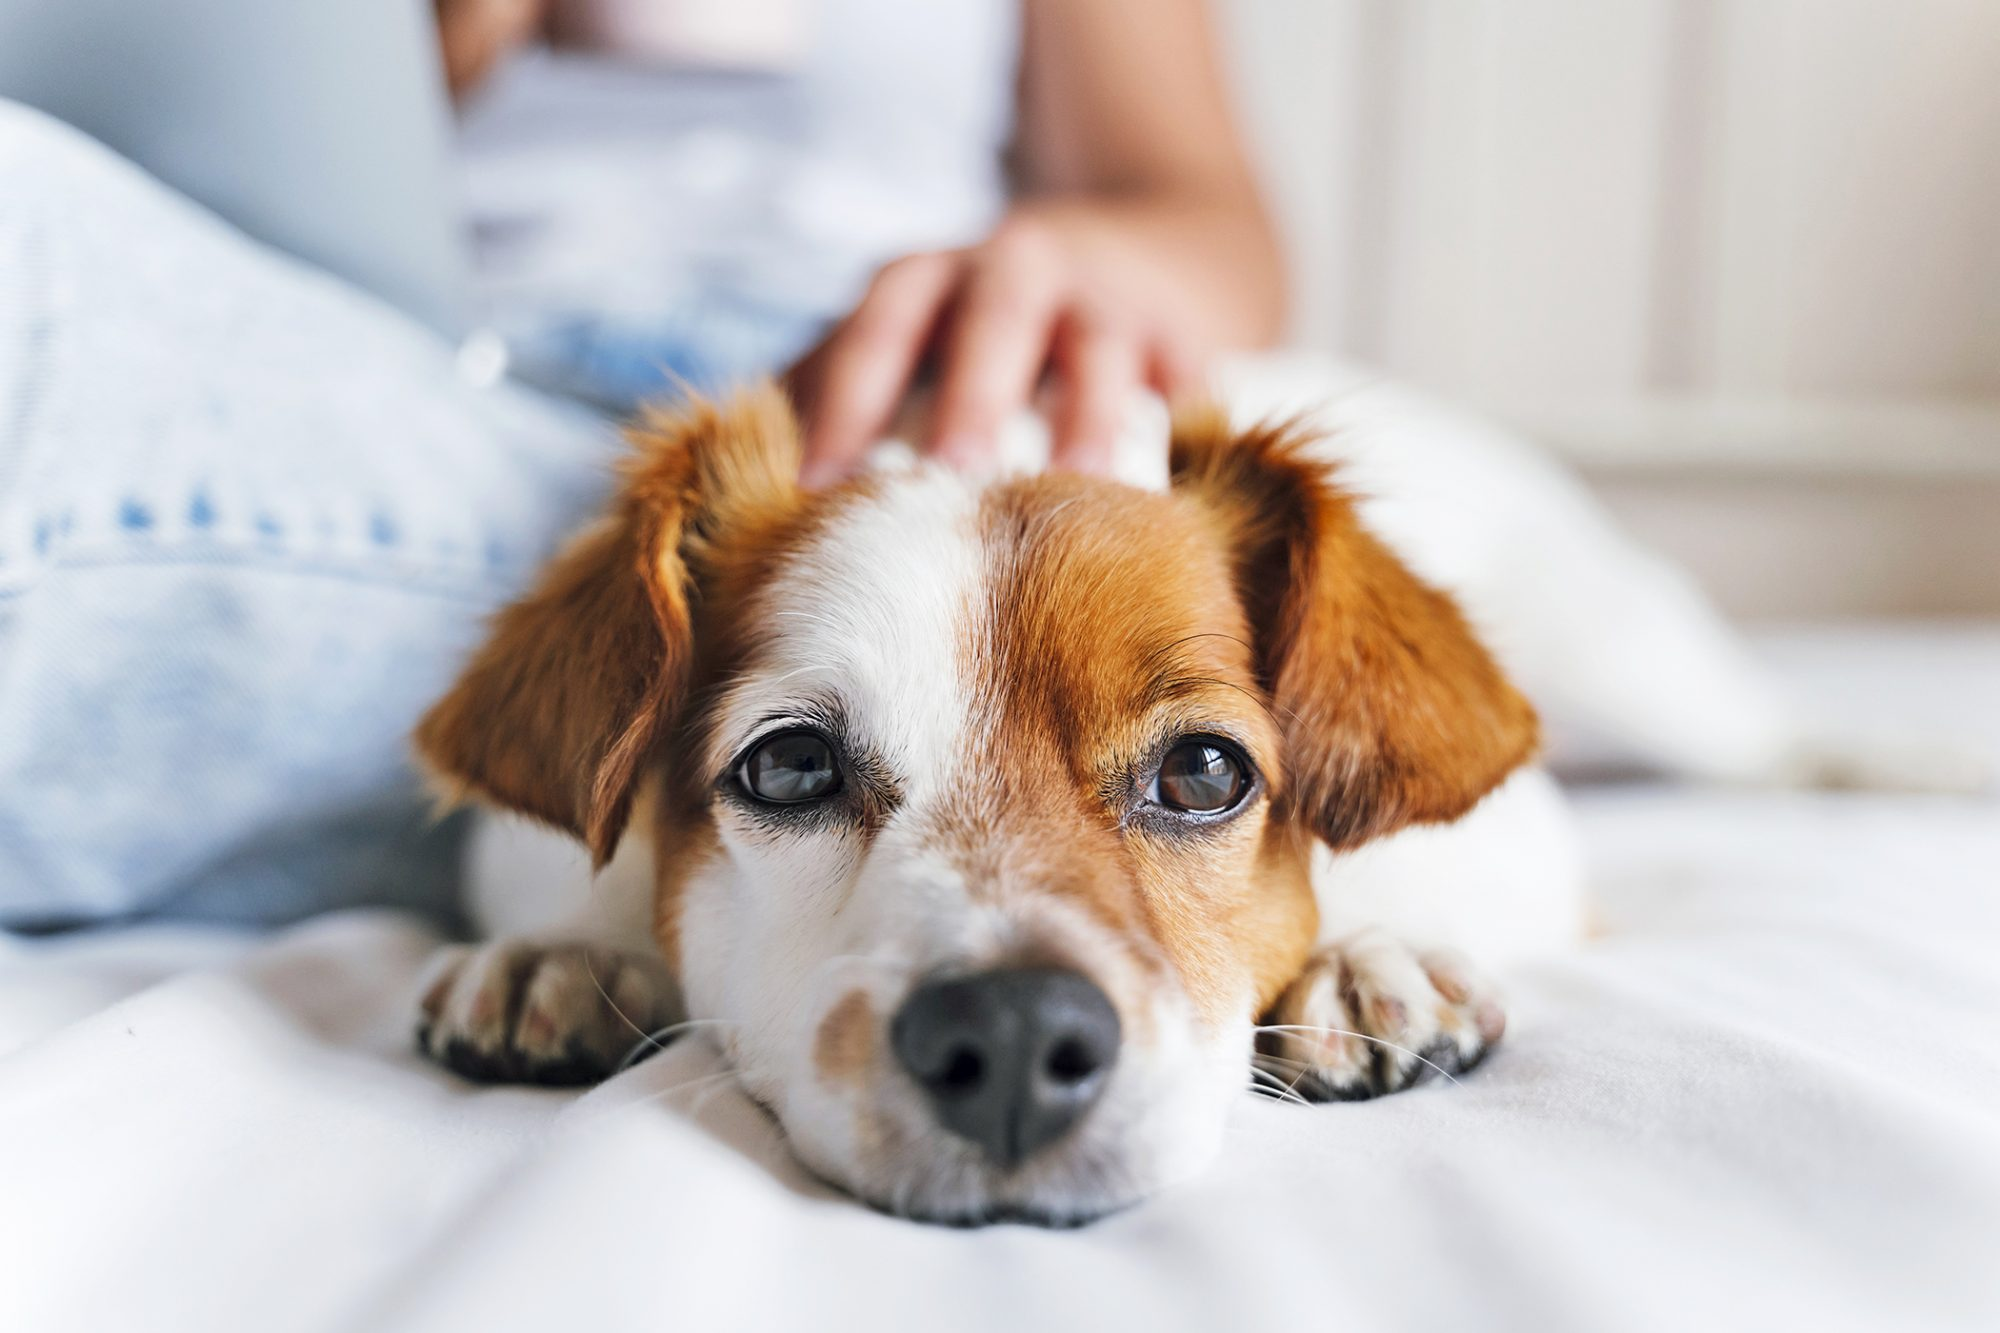 petting dog laying on bed